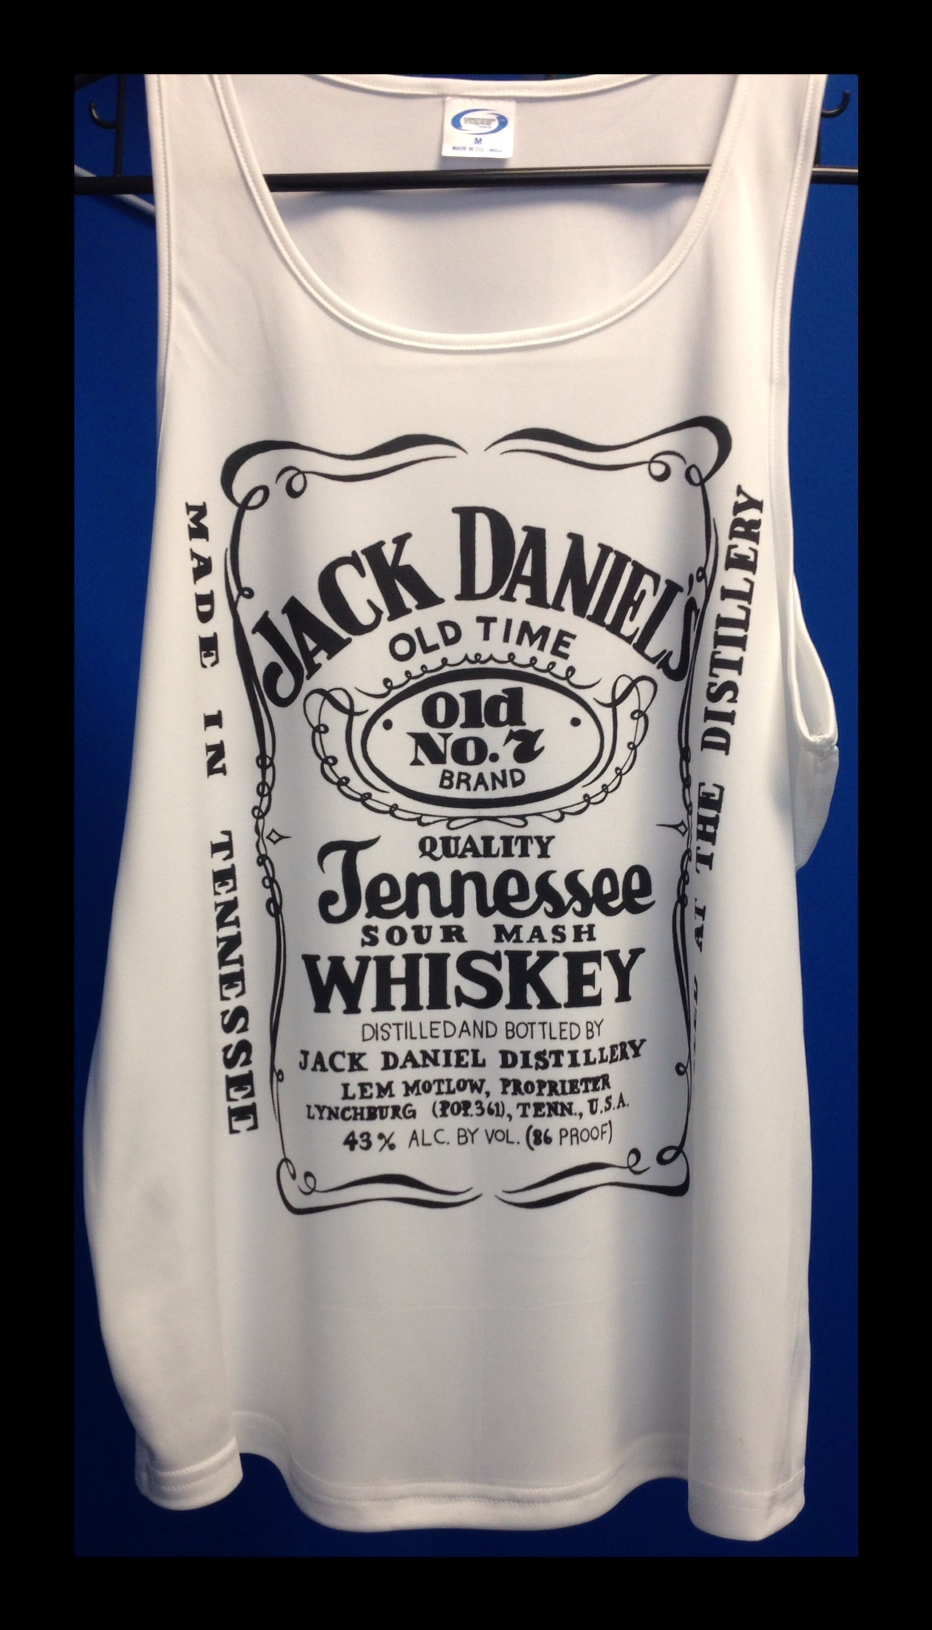 Jack daniels inspired limited edition tank — luxury elites